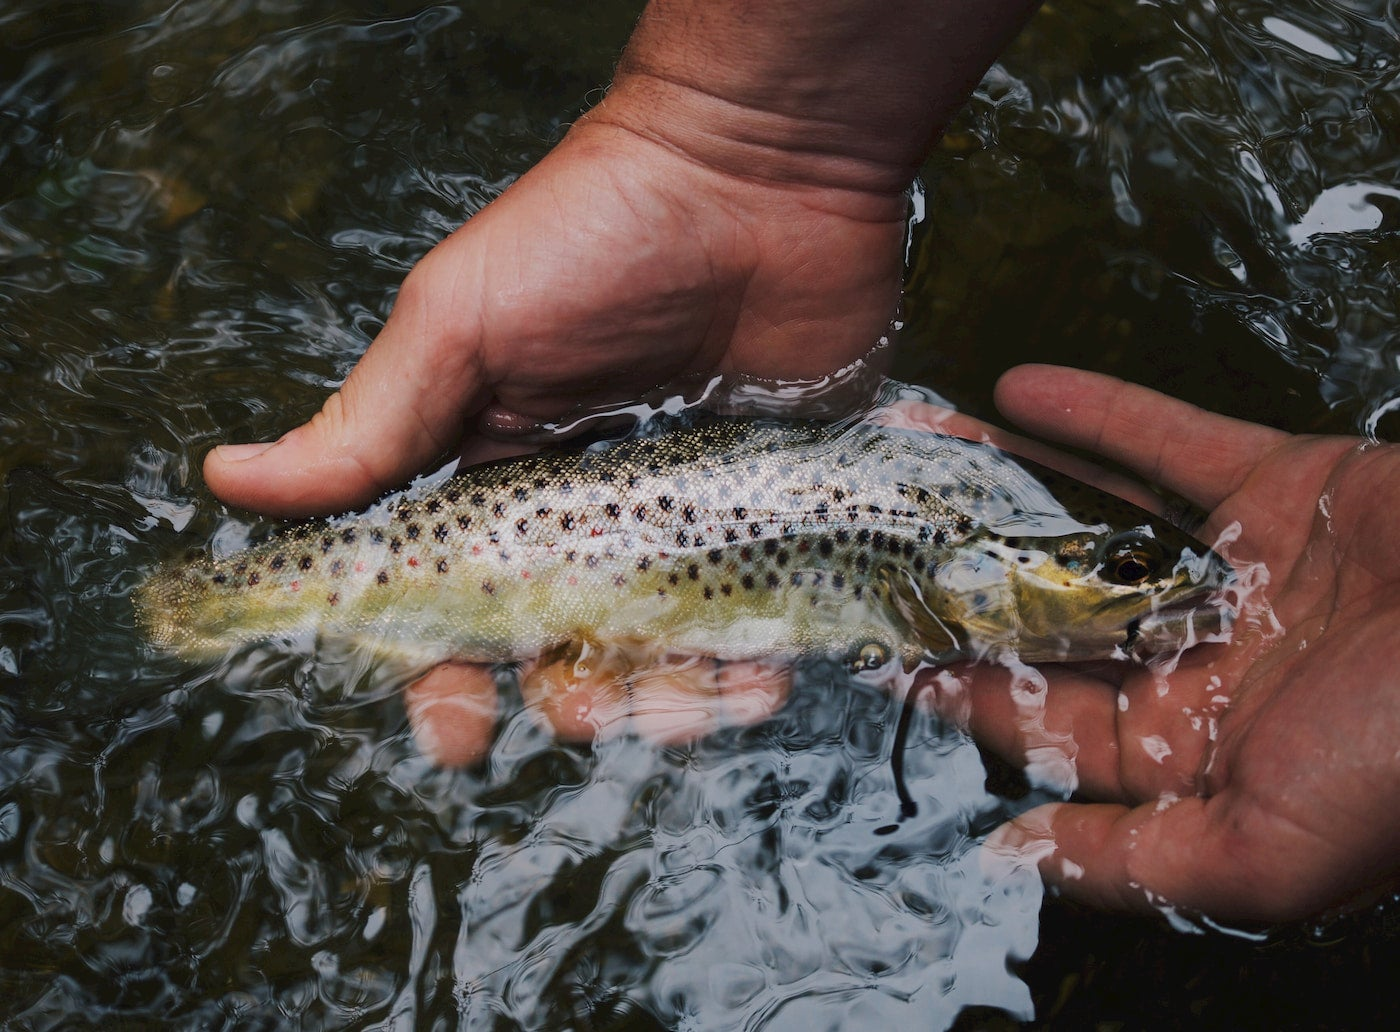 Close up of two hands holding a freshly caught rainbow trout underwater.